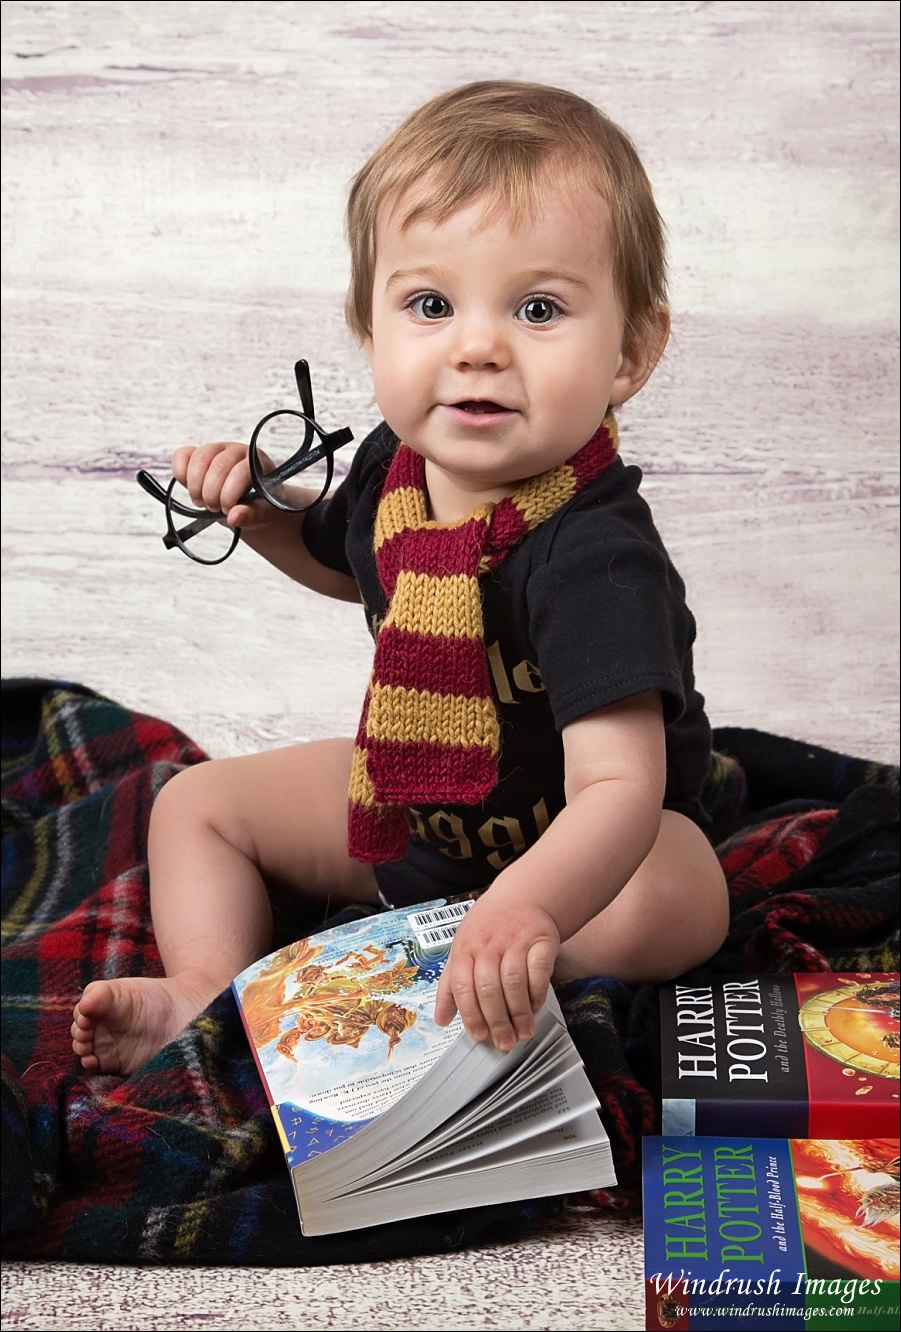 Harry potter themed baby pictures calgary baby photographer adorable baby photos in calgary windrush images